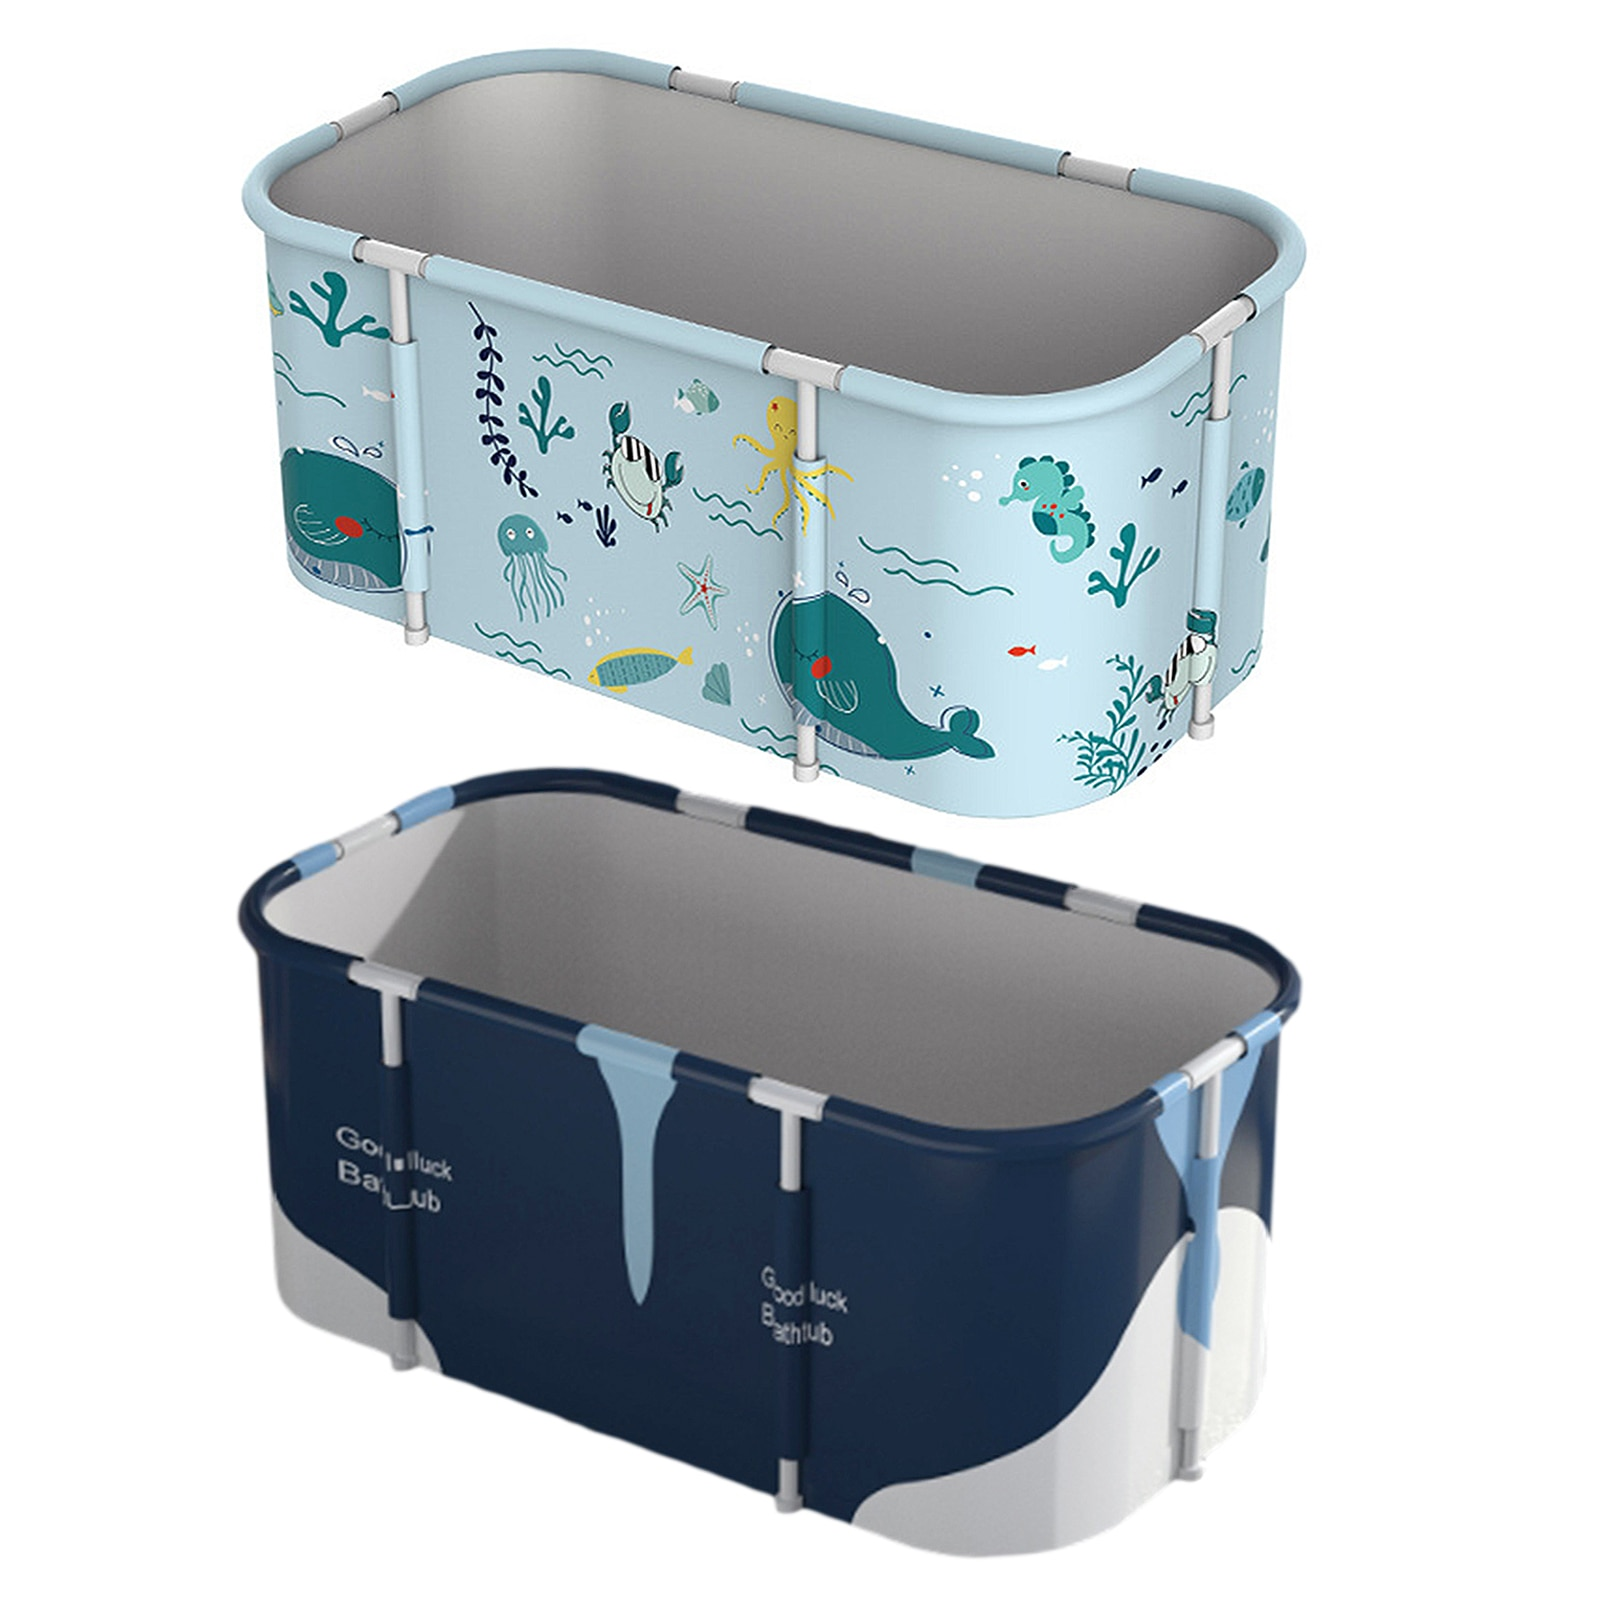 Nordic Style Foldable PVC Bathtub Portable Waterproof Thickened Adult Non-Inflatable Large Size Household Bathing Bucket enlarge